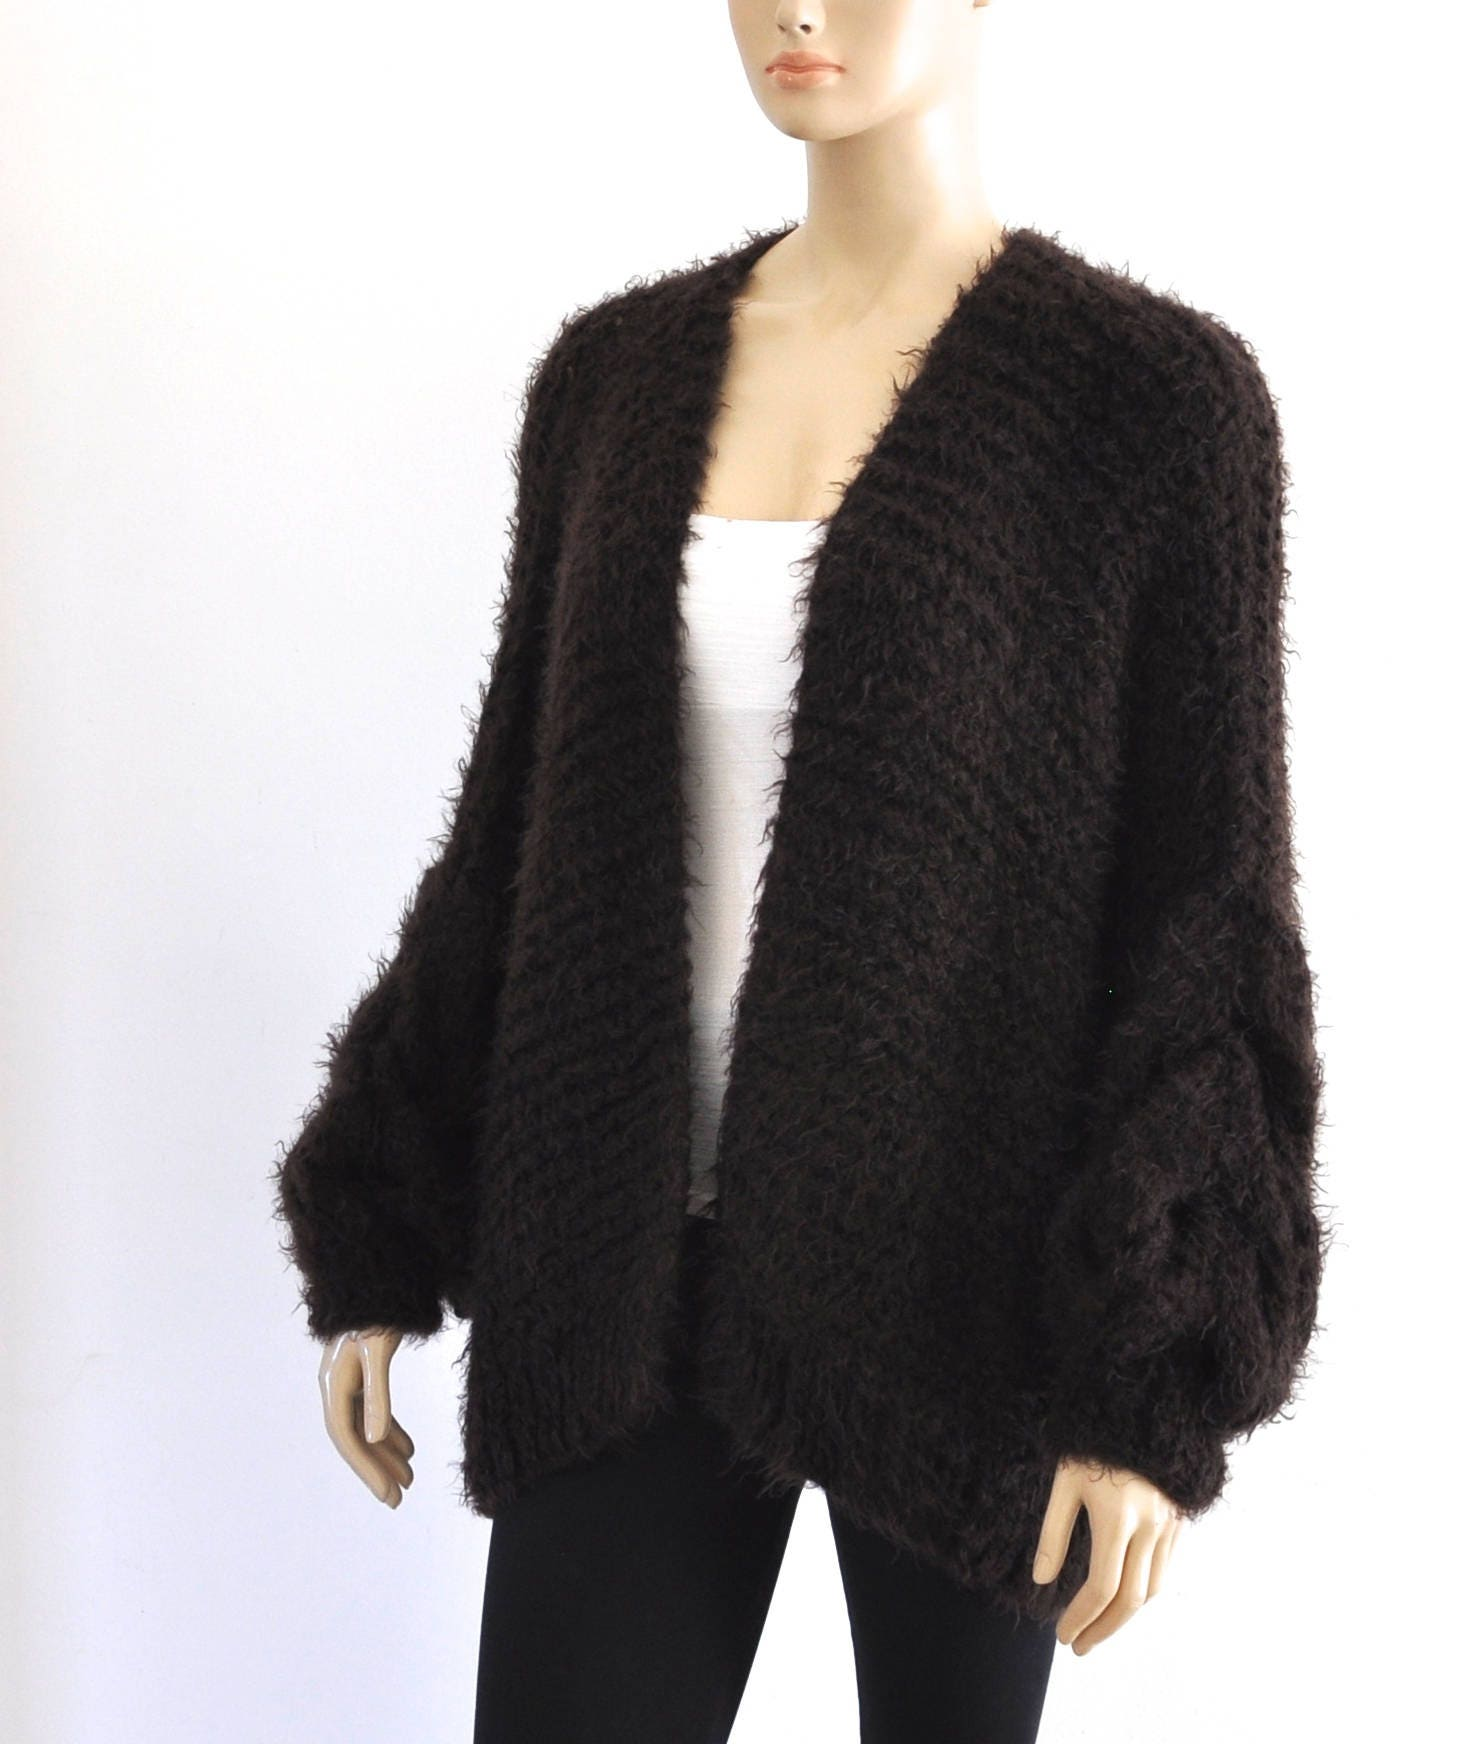 Dark Brown Knit Oversized Cardigan Chunky Cable Knit Jacket